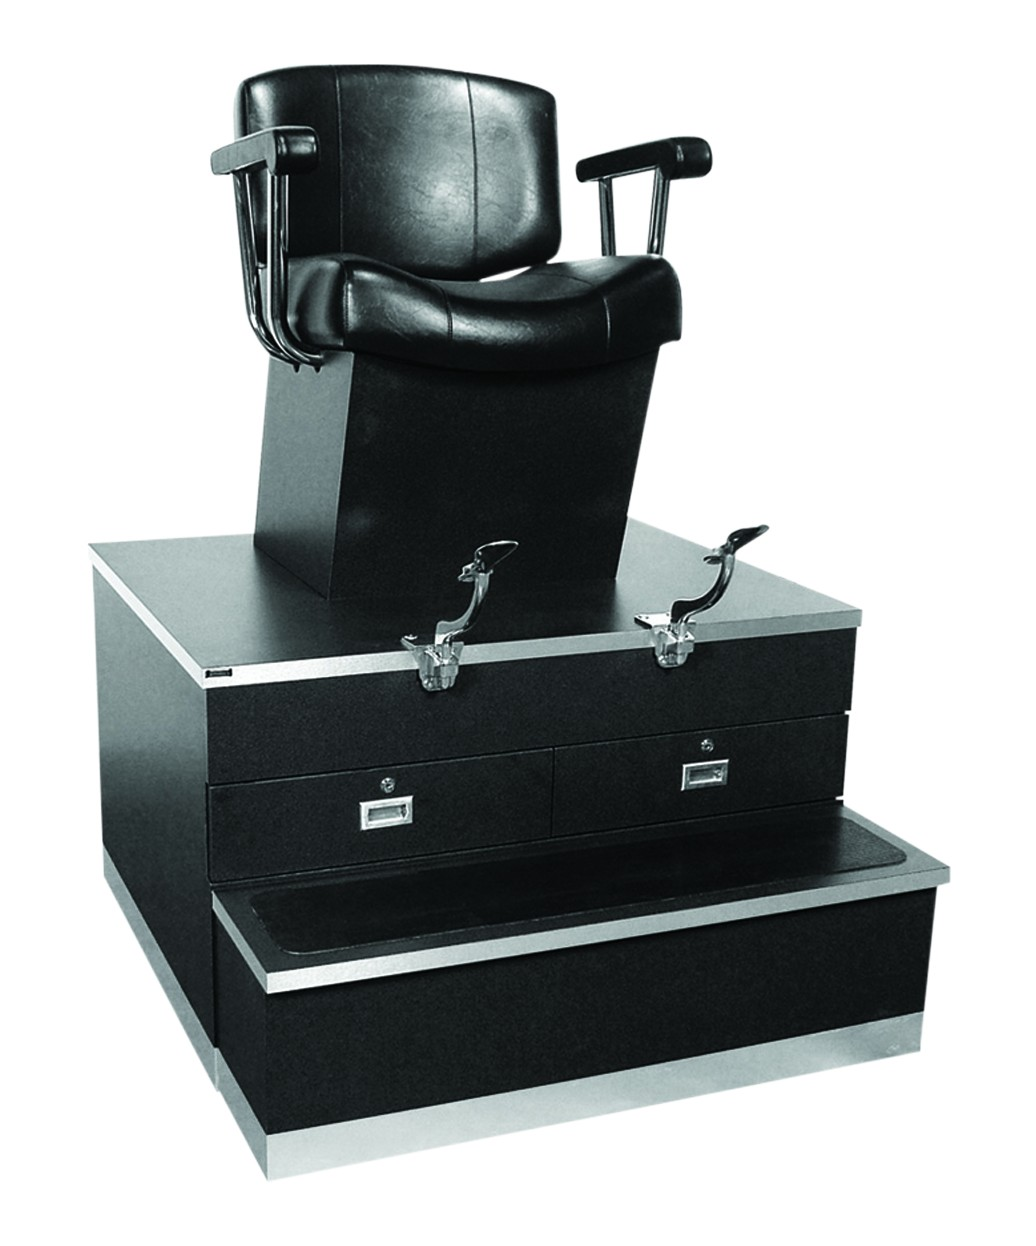 barber shop chairs wooden garden ebay collins 9040 continental shoe shine stand